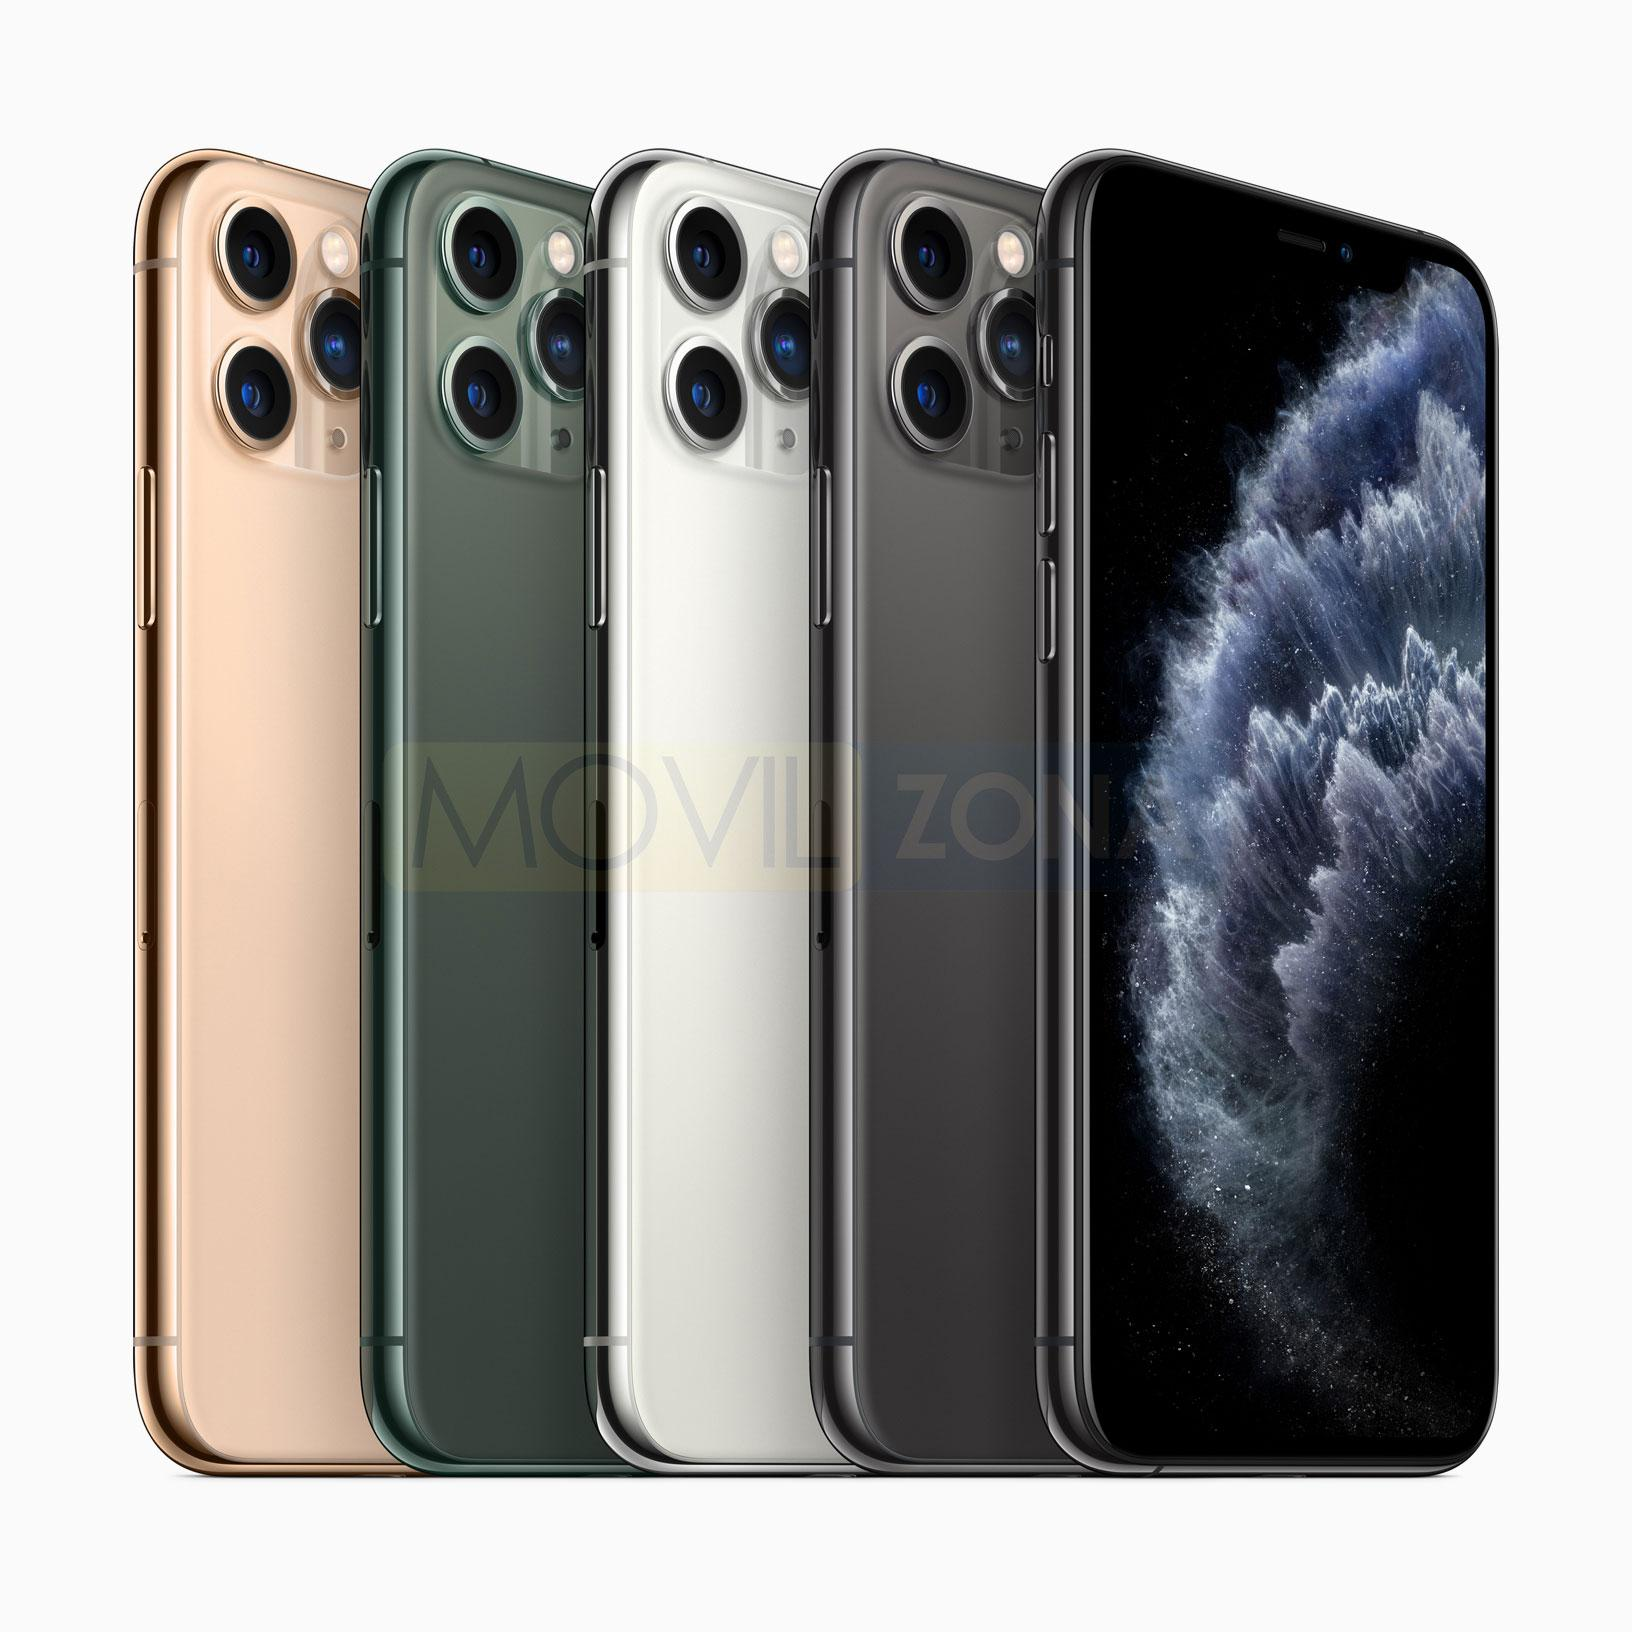 Apple iPhone 11 Pro Max colores